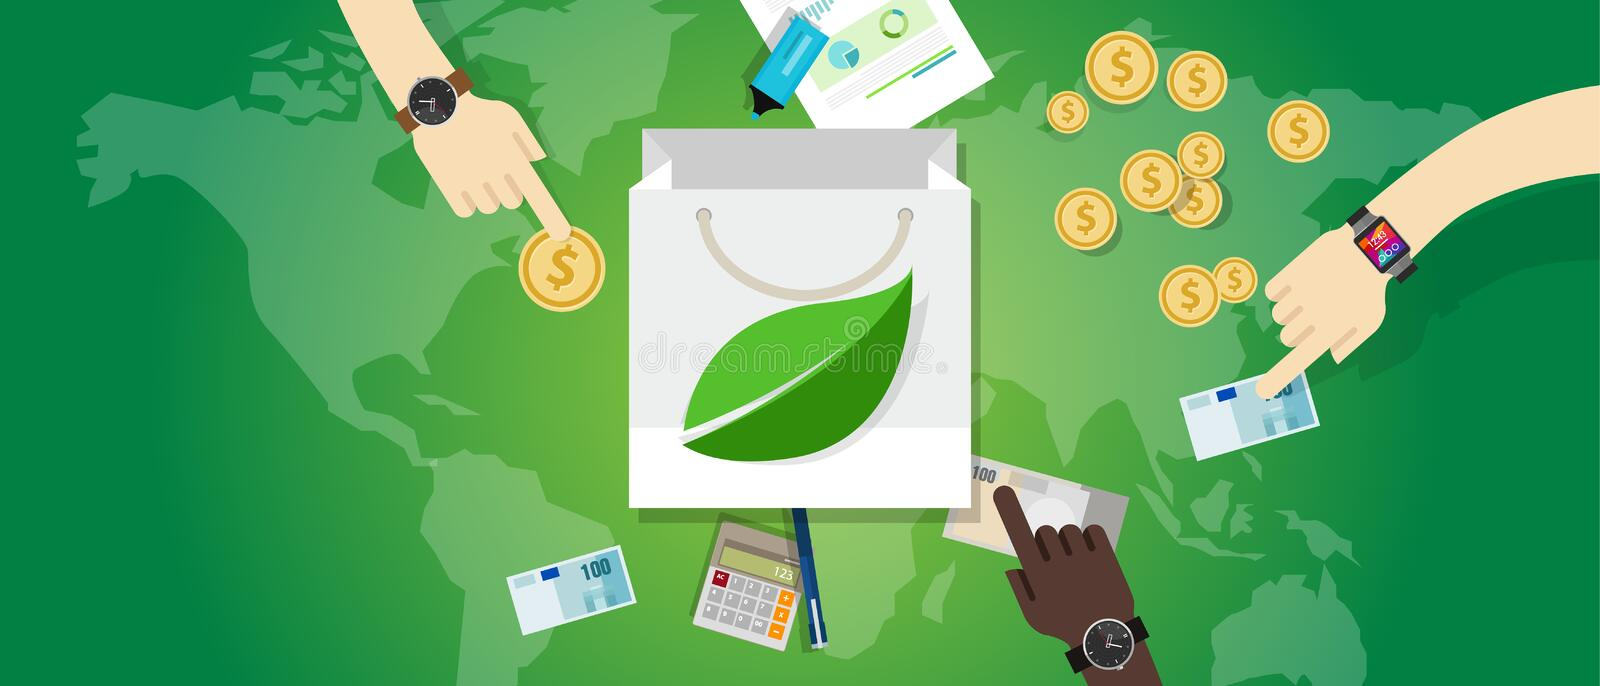 Bag shopping guilt free green friendly consumption buy eco environment concept royalty free illustration